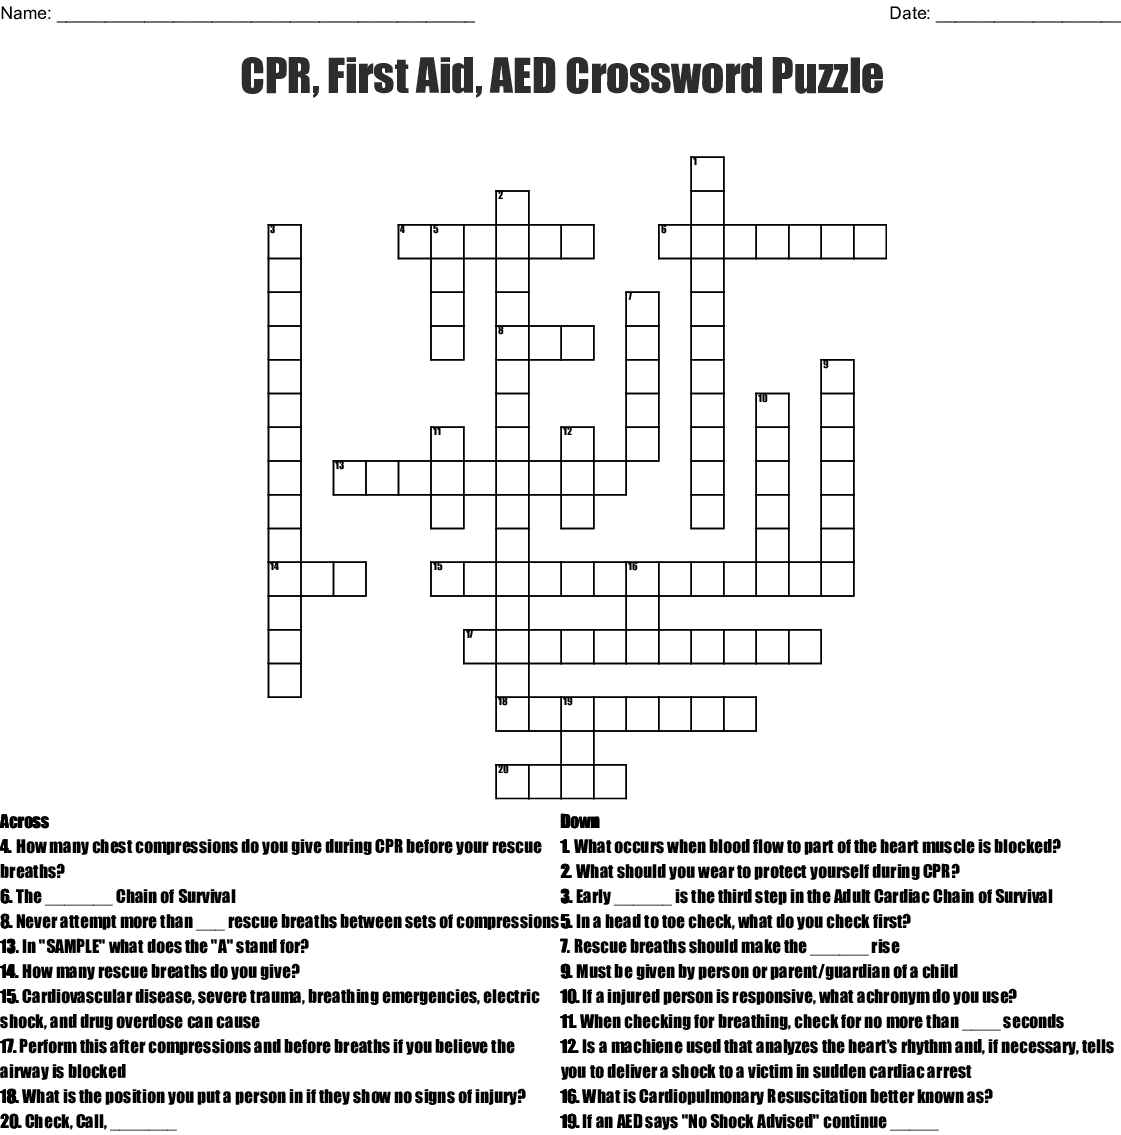 Safety Crossword Puzzle